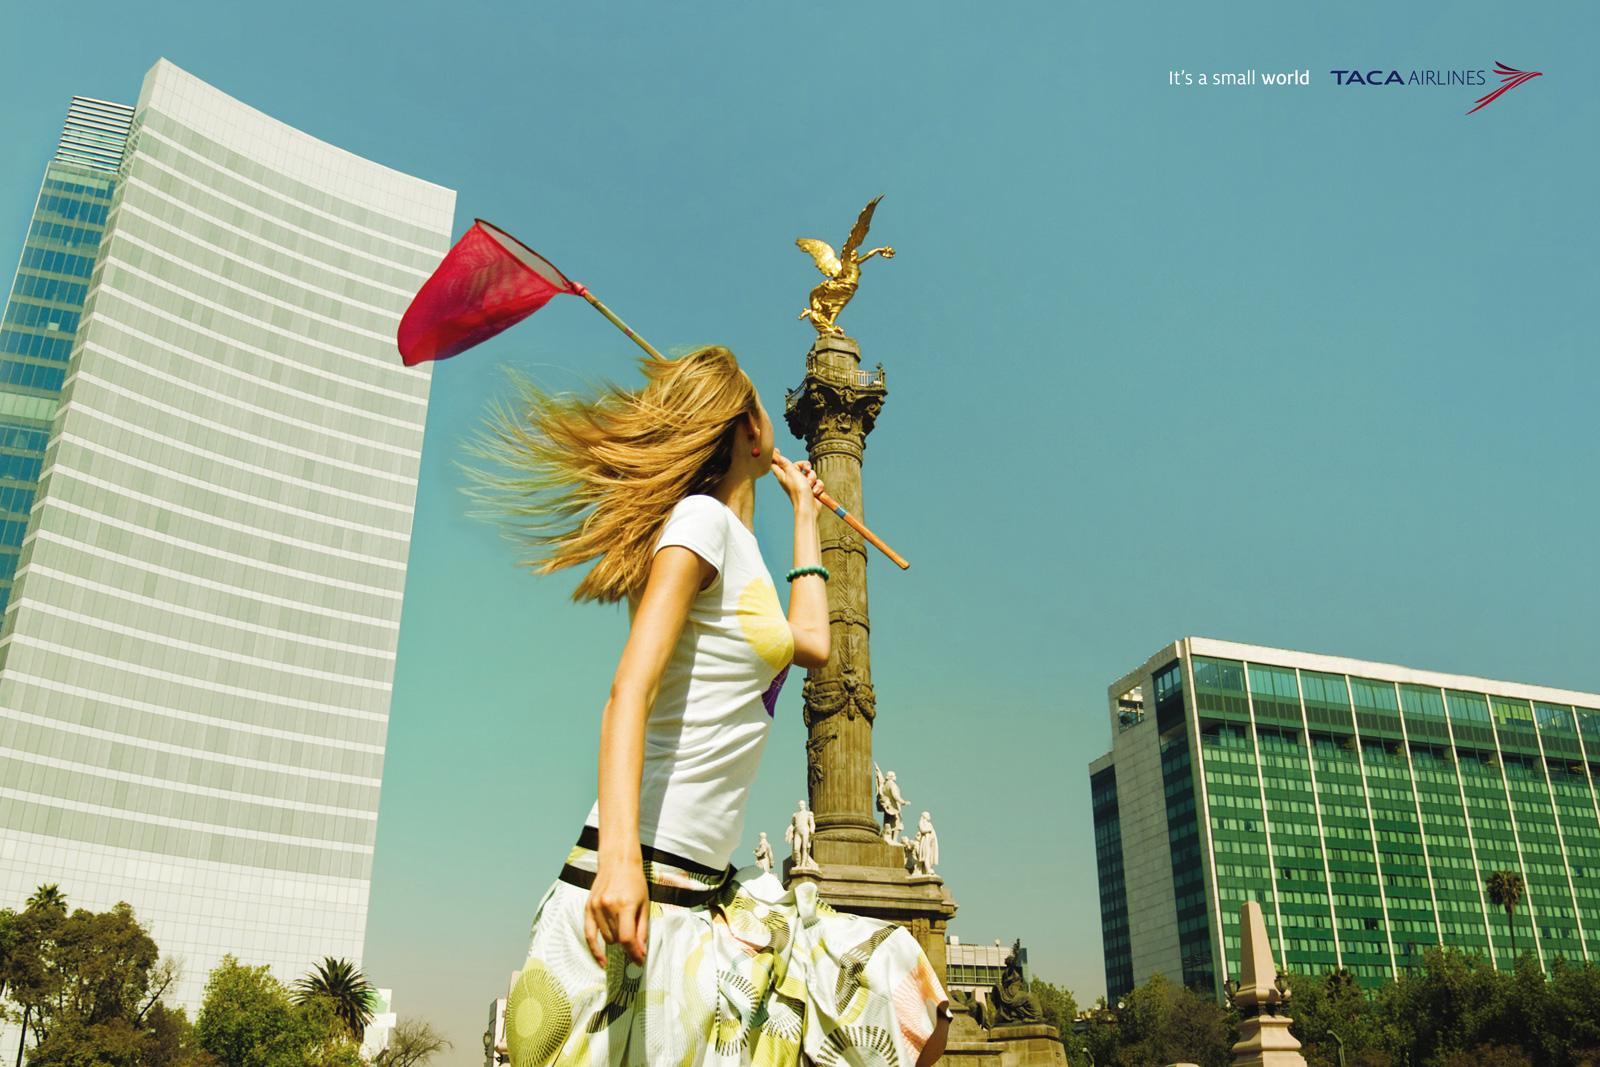 TACA Airlines Print Ad -  Small Mexico